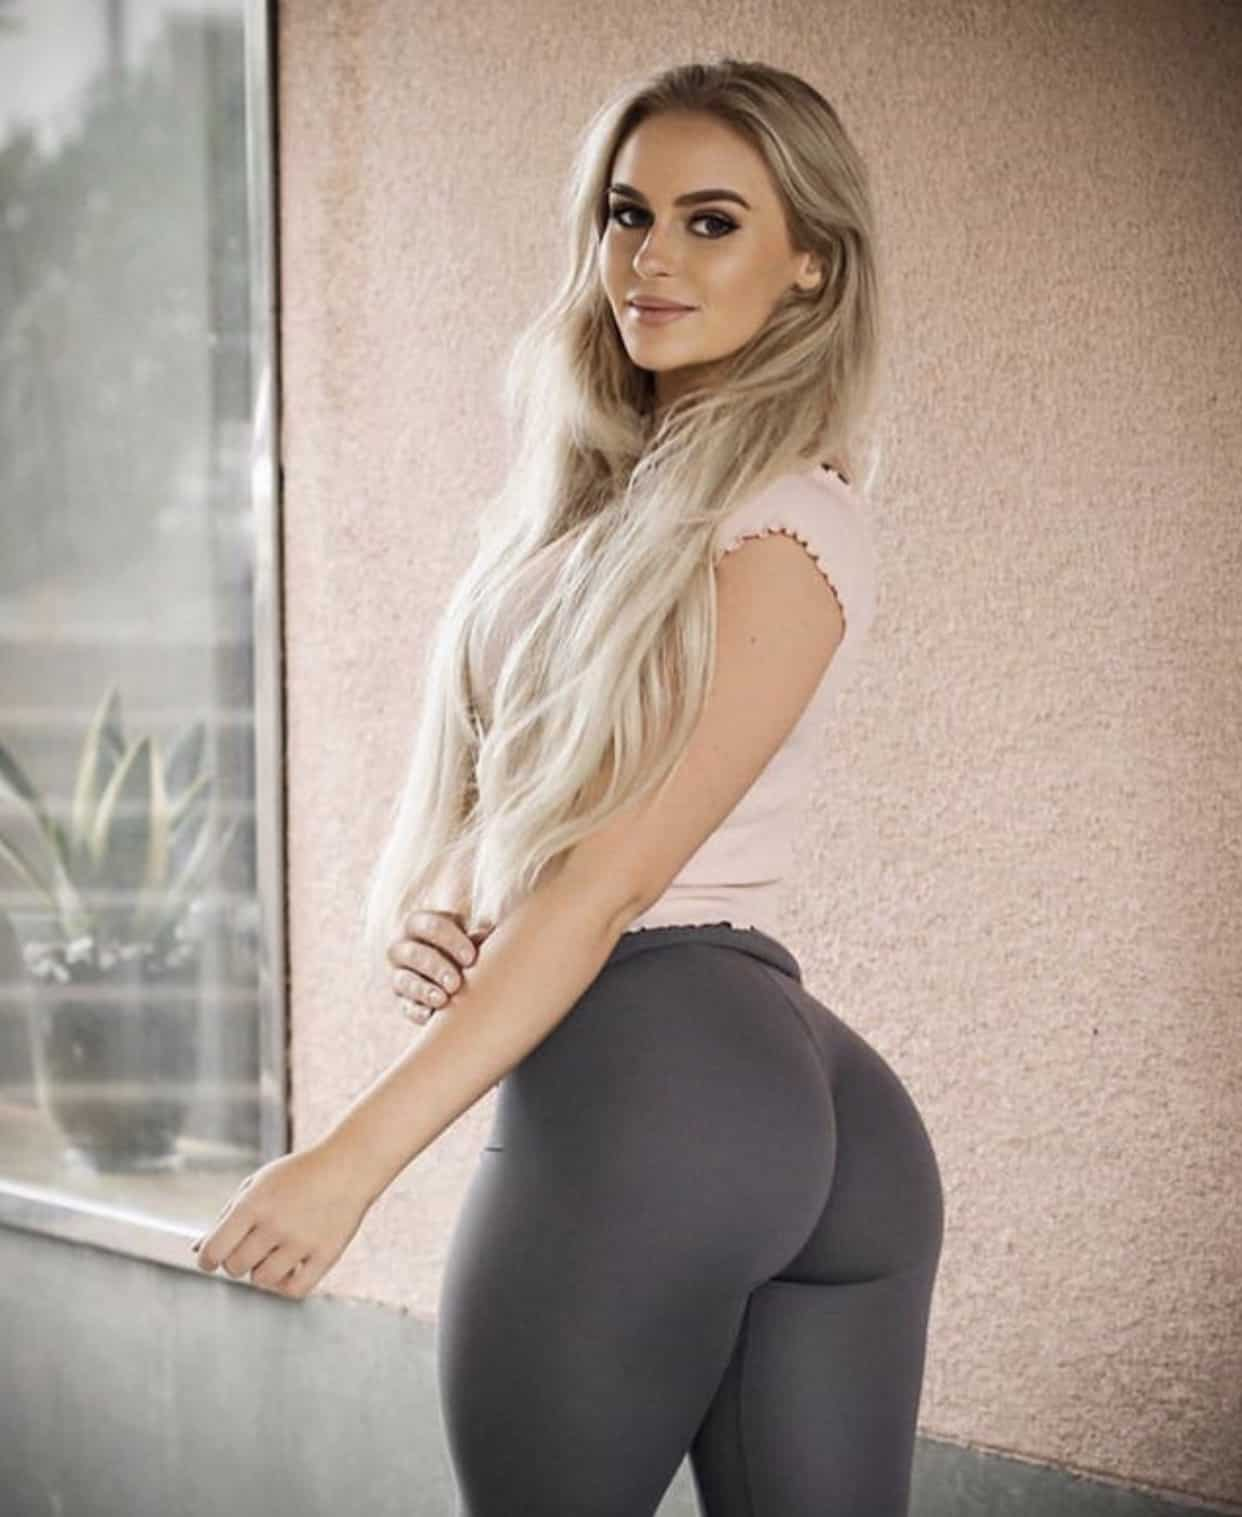 Anna Nystrom in Tight Yoga Pants